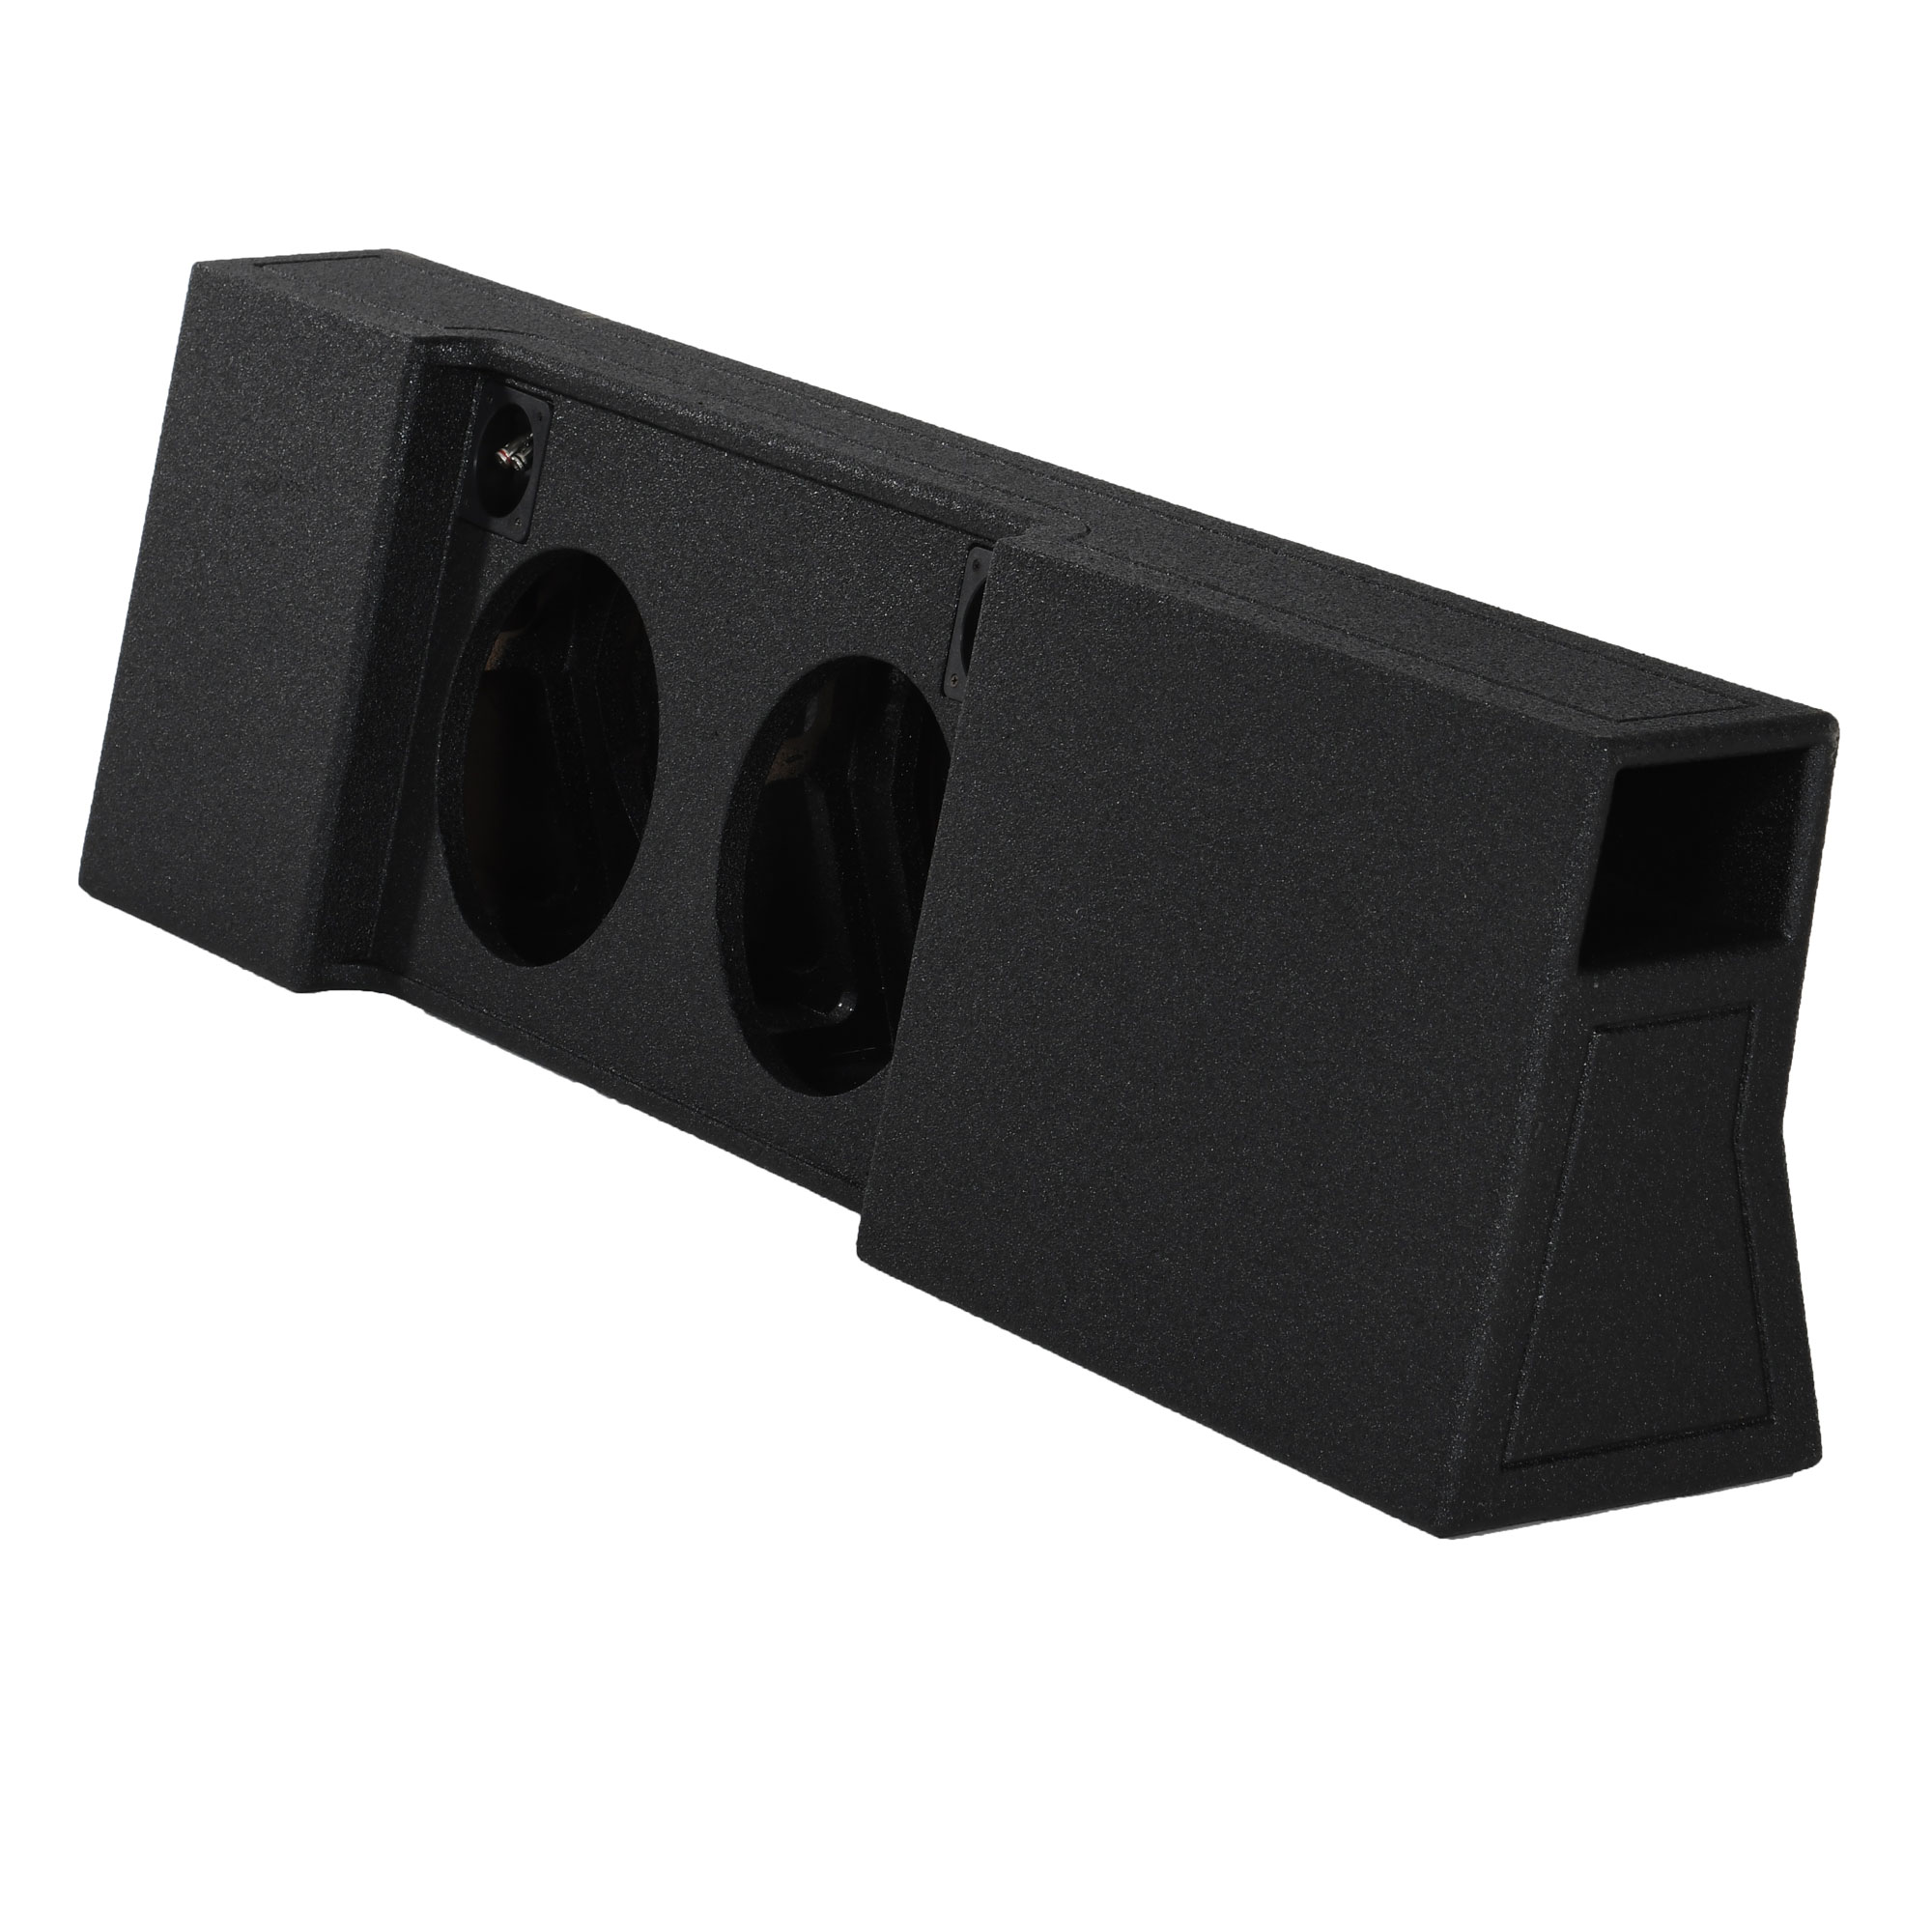 """PORTED Subwoofer Sub Box for 2012 Ford F150 Super Crew Cab Supercrew 1-12/"""""""